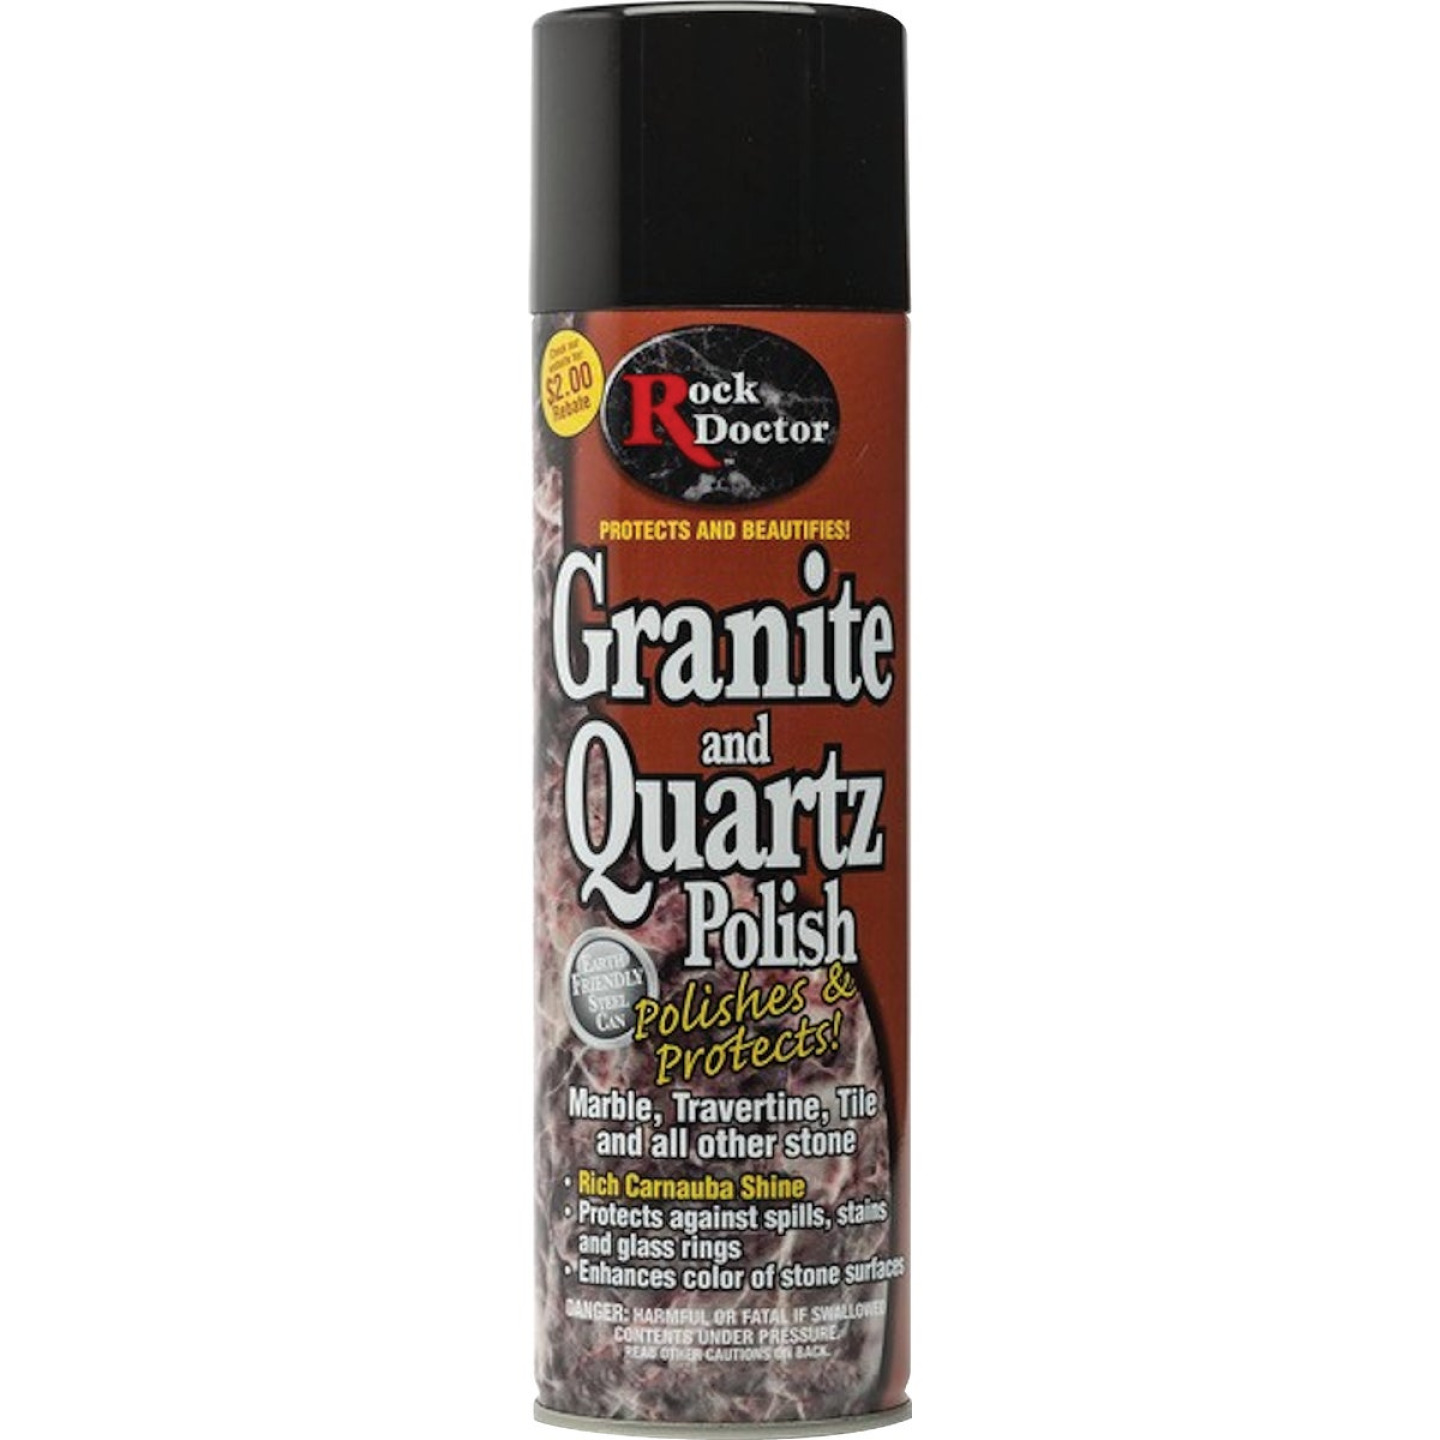 Rock Doctor 18 Oz. Granite Polish Image 1